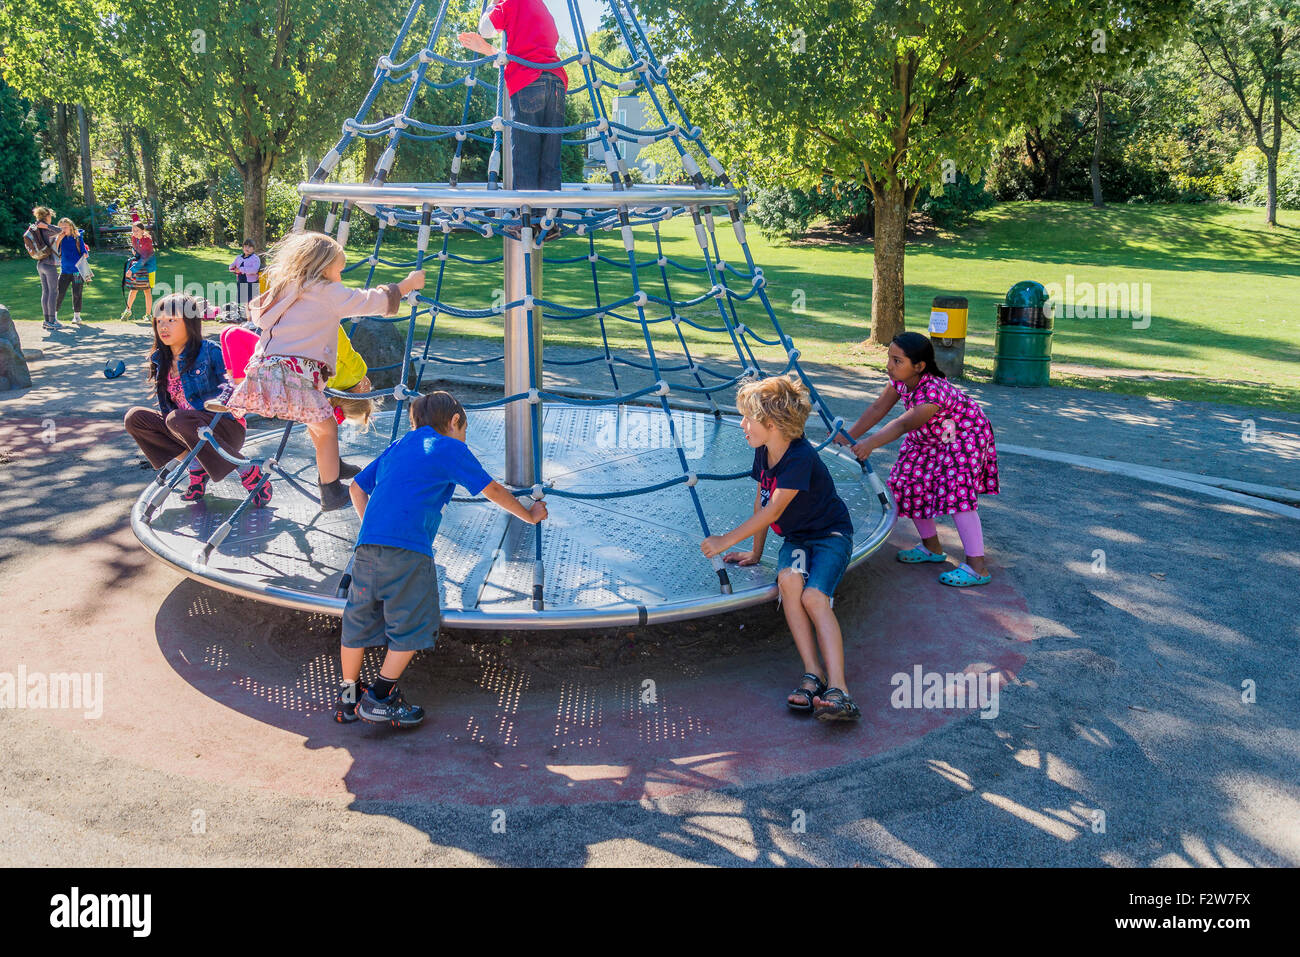 kids playing on roundabout in playground - Stock Image